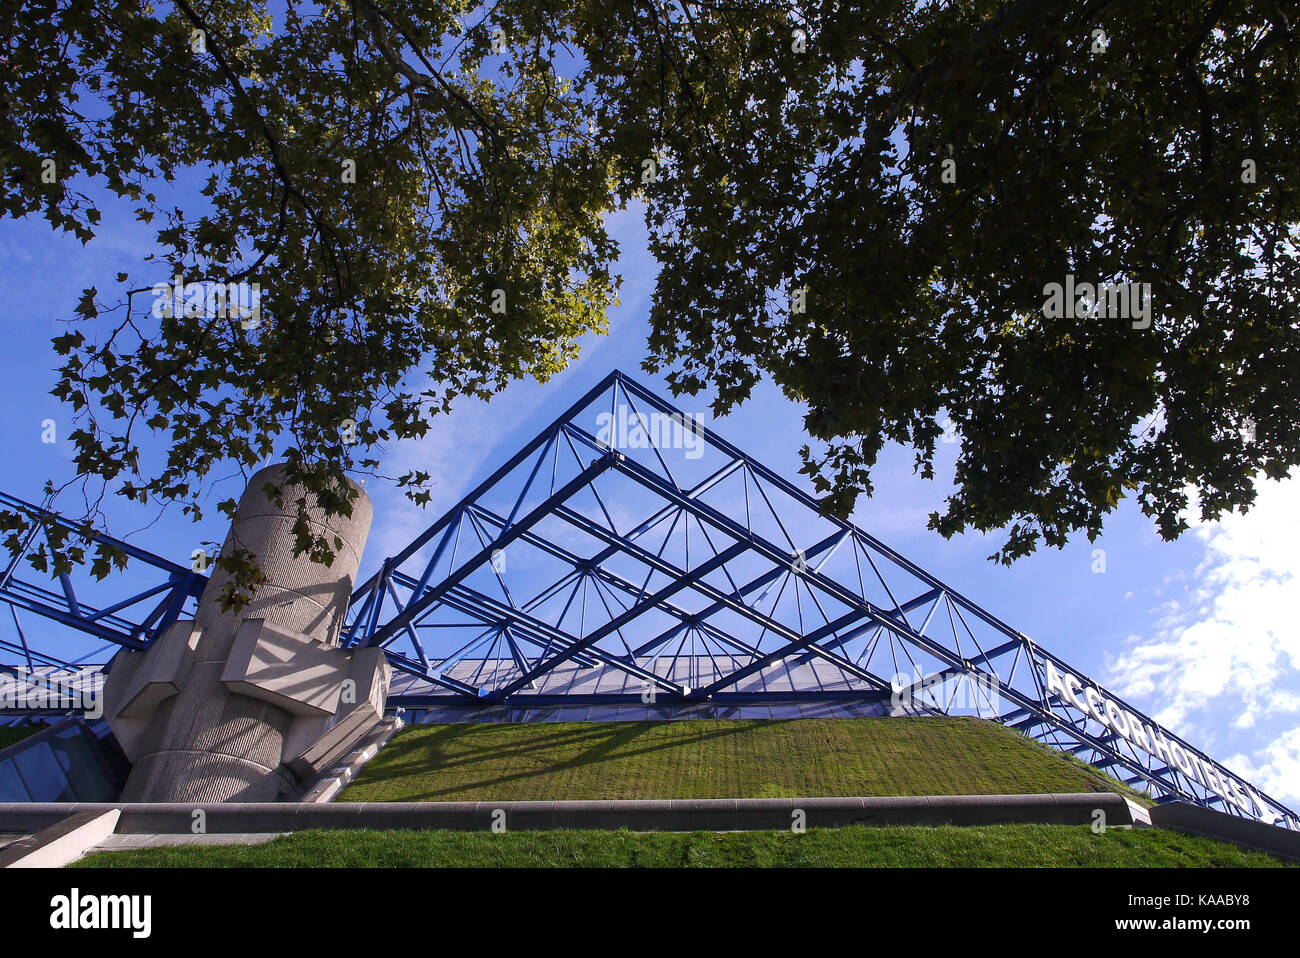 General view of Bercy Arena, Paris, France - Stock Image